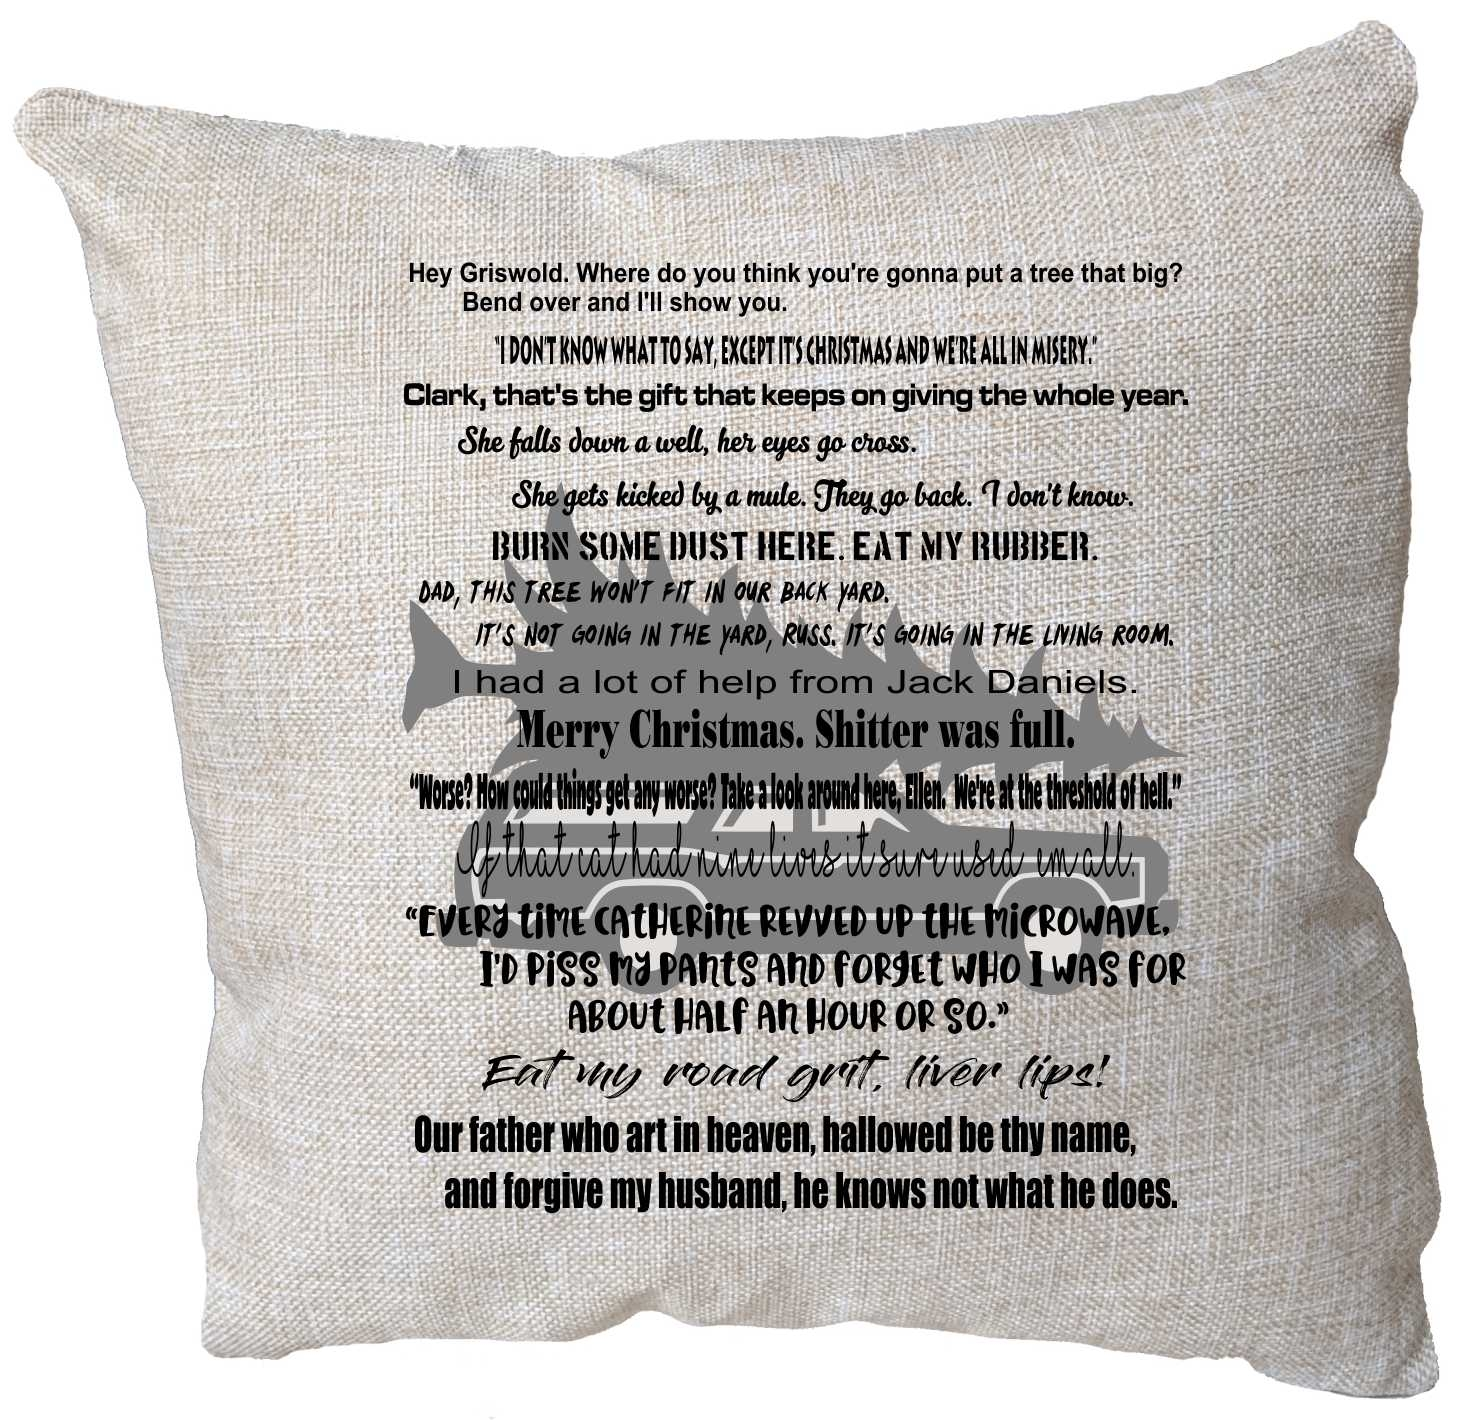 Christmas Vacation Quotes.Looking For Unique Christmas Vacation Movie Gift The Pillow Has Many Of The Well Known Movie Quotes Along With A Photo In The Background